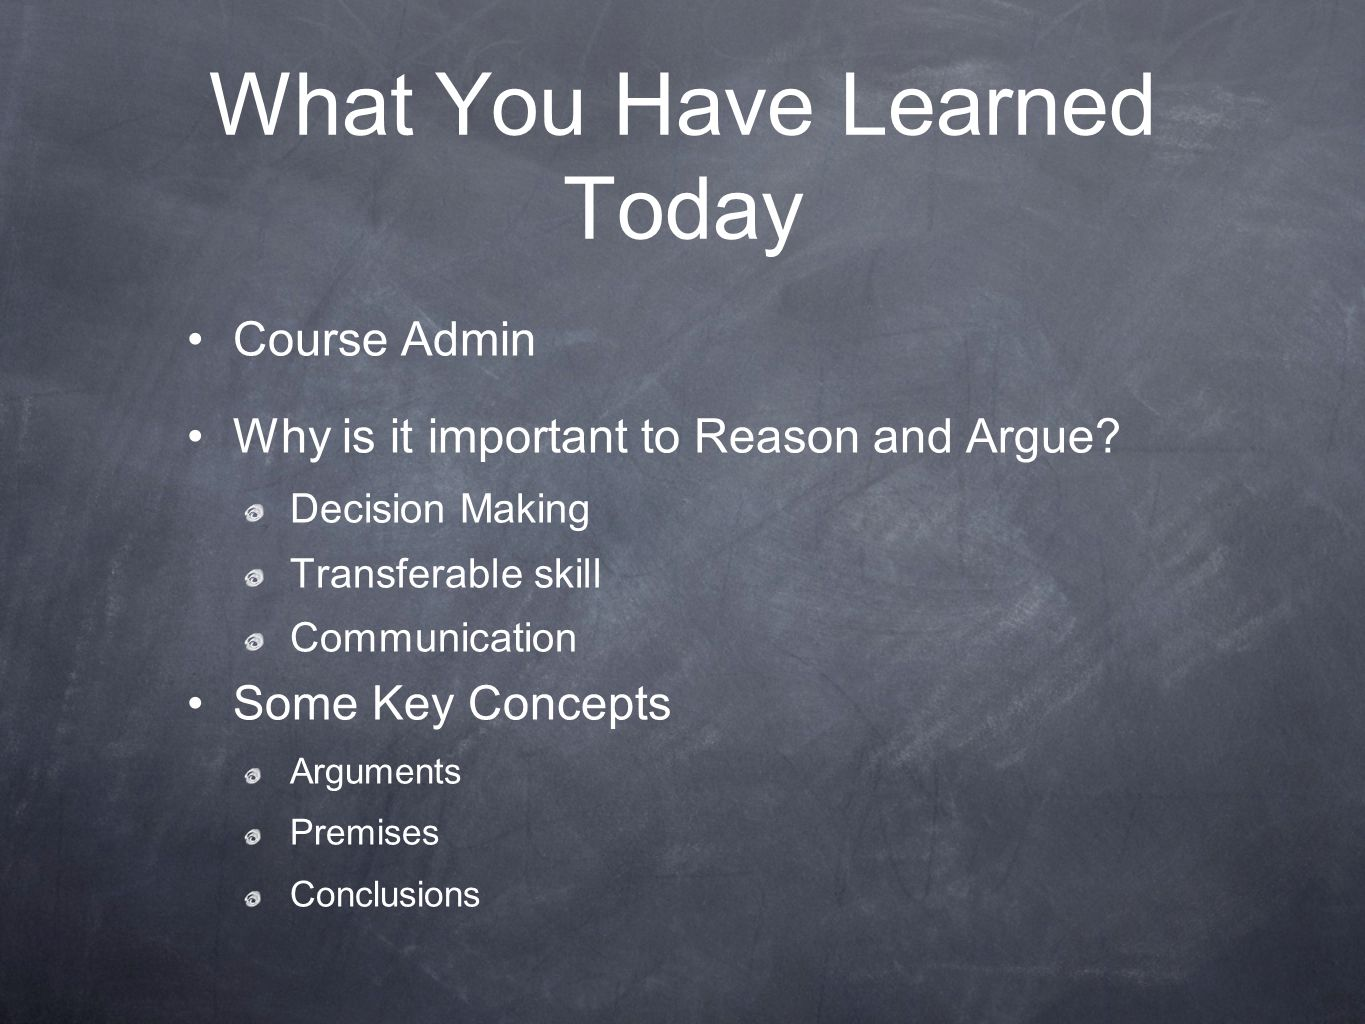 What You Have Learned Today